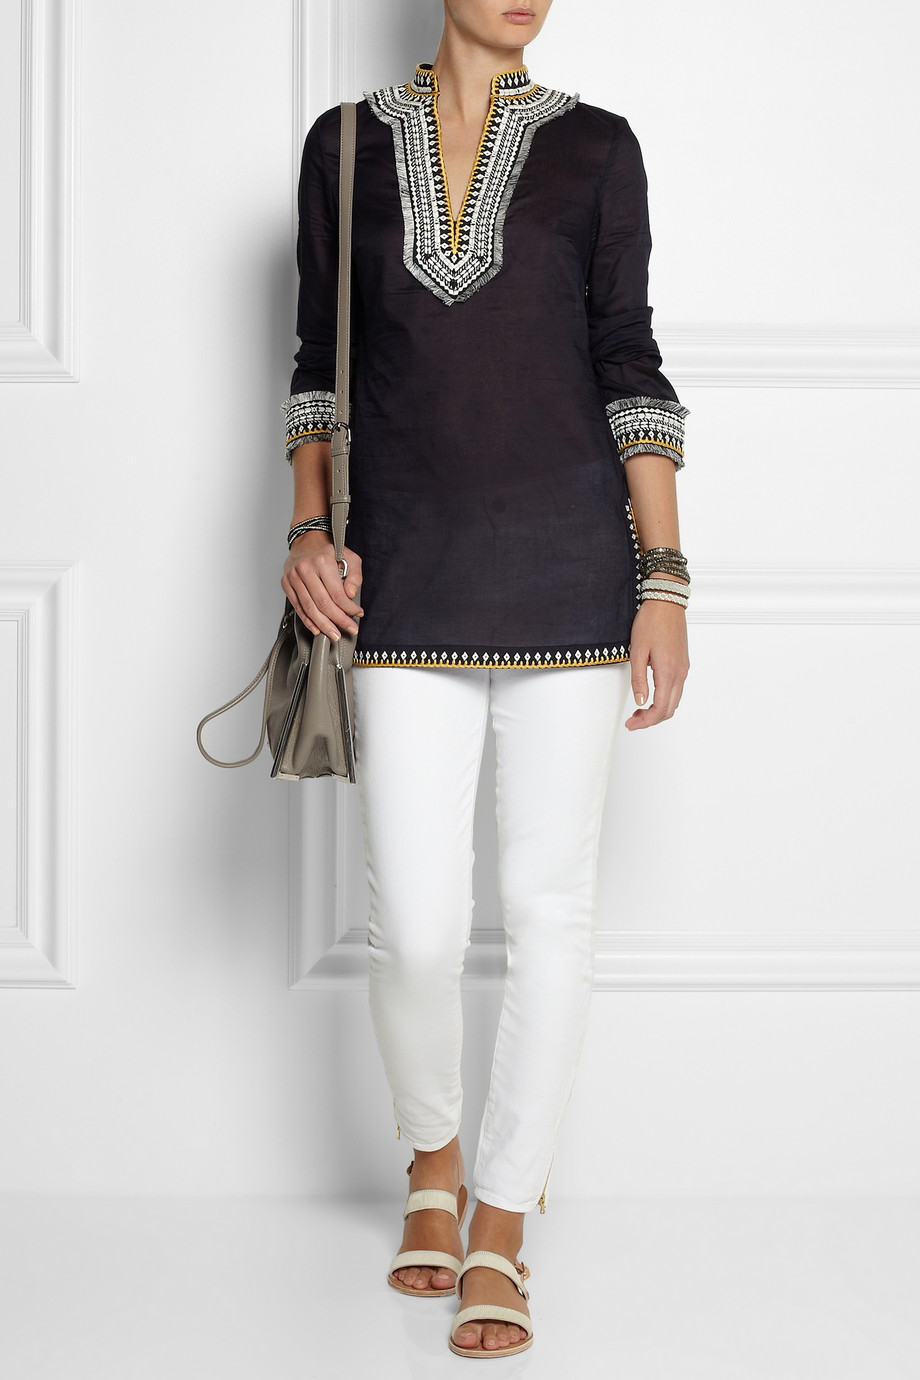 Tory burch embroidered cotton tunic in black lyst for Tory burch fashion island